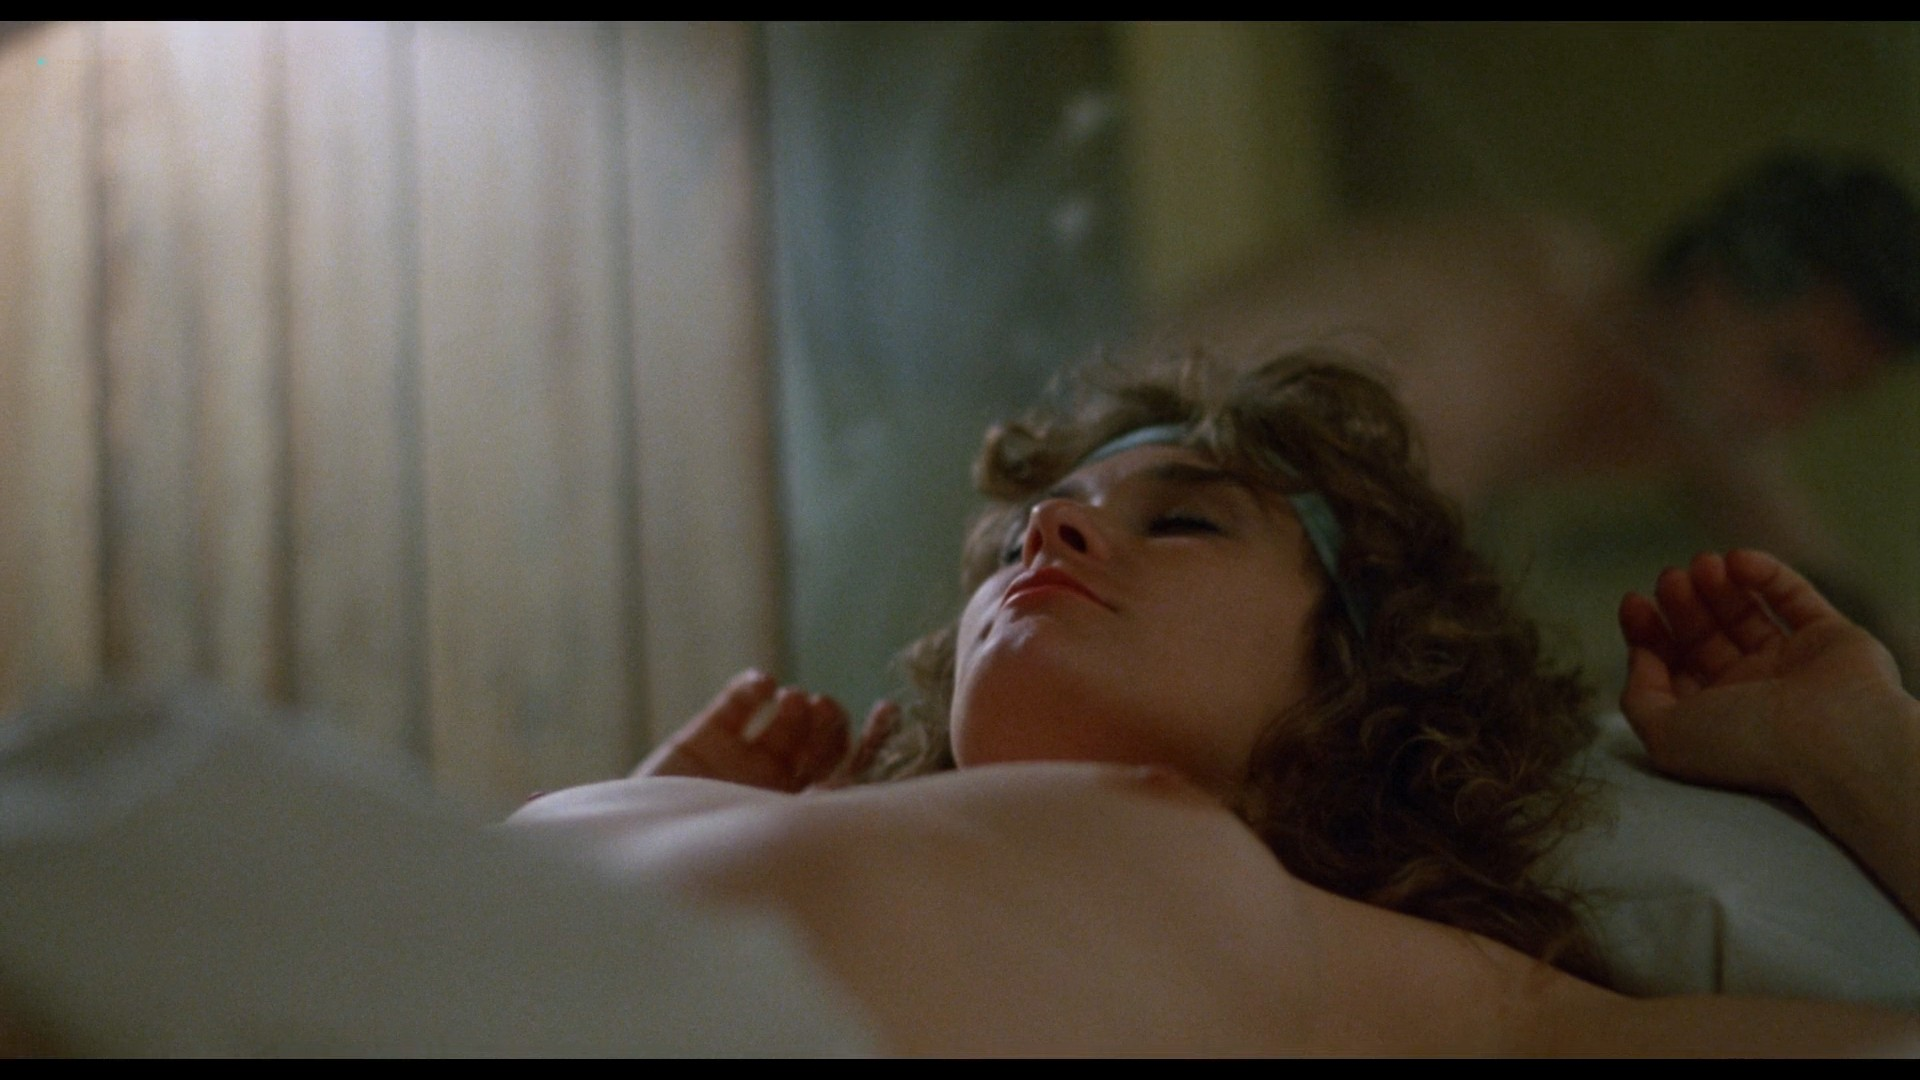 Graem McGavin nude Donna McDaniel and other's nude full frontal - Angel (1983) HD1080p BluRay (17)